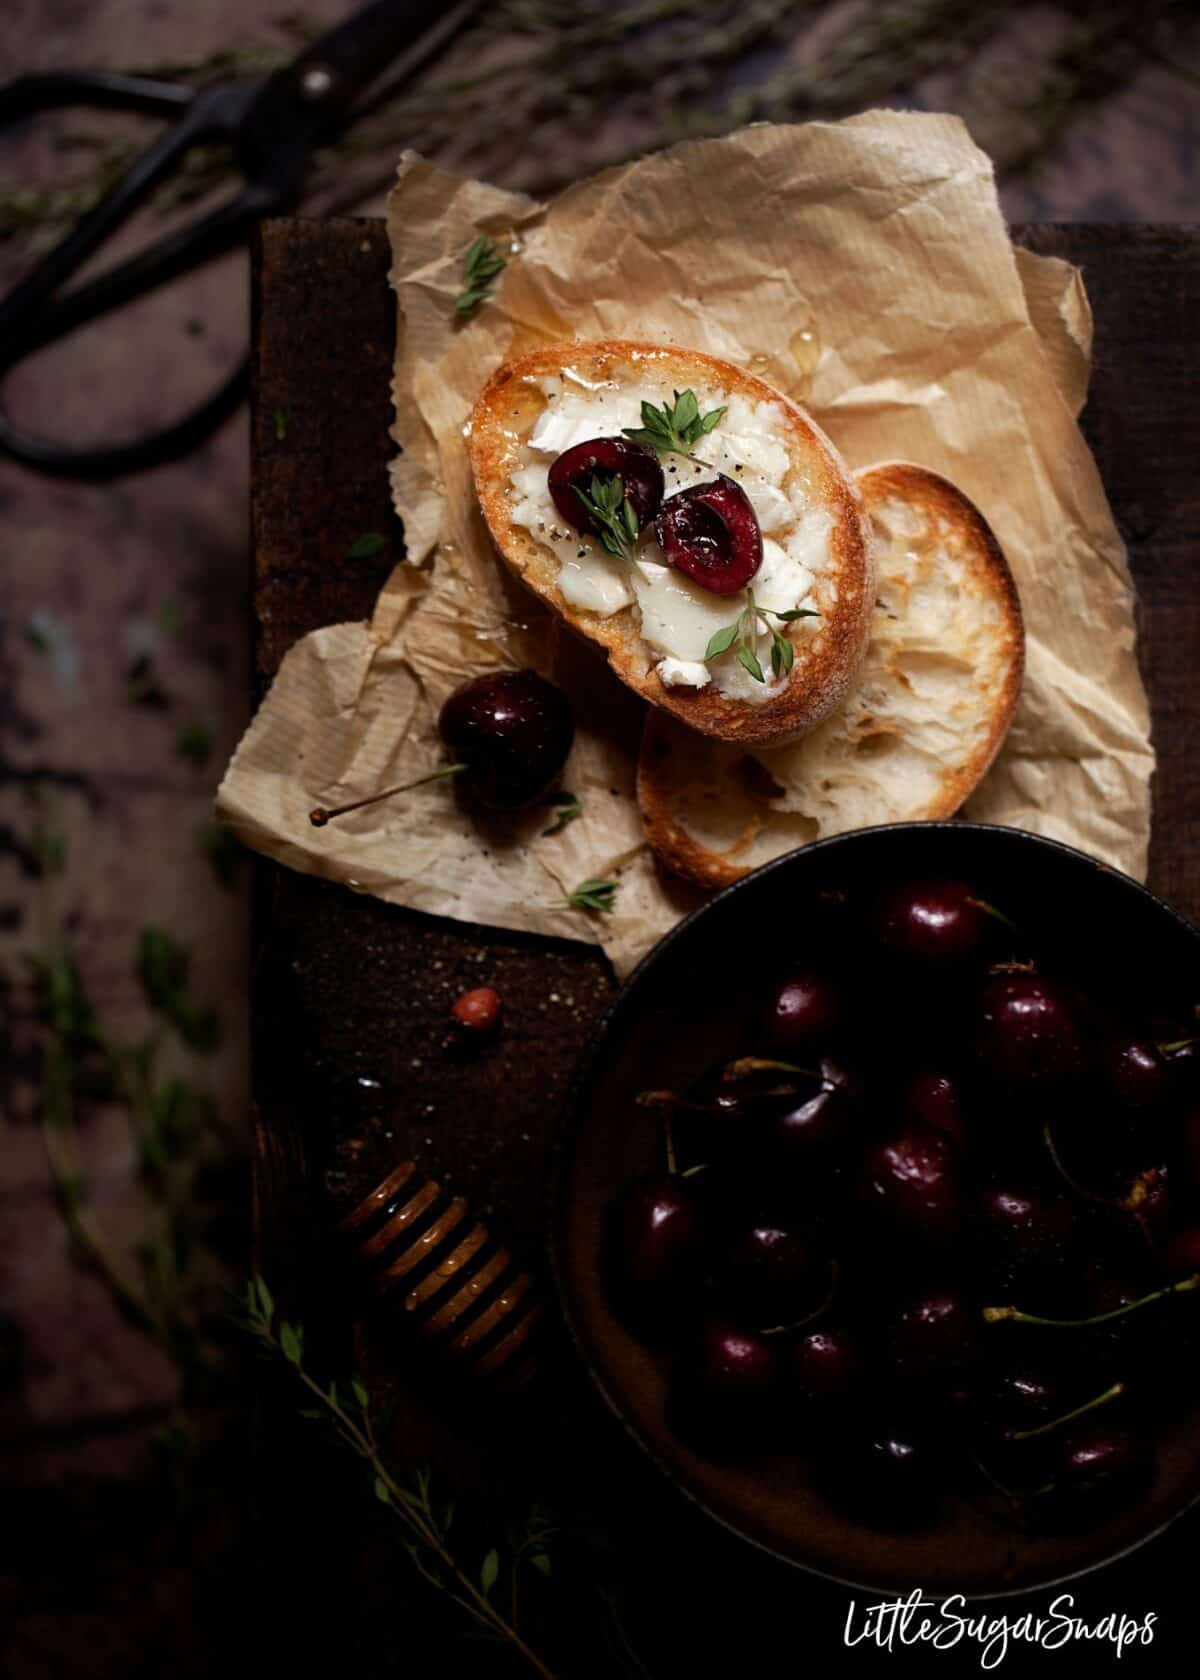 Simple crostini with goats cheese, cherries and honey net to a bowl of cherries